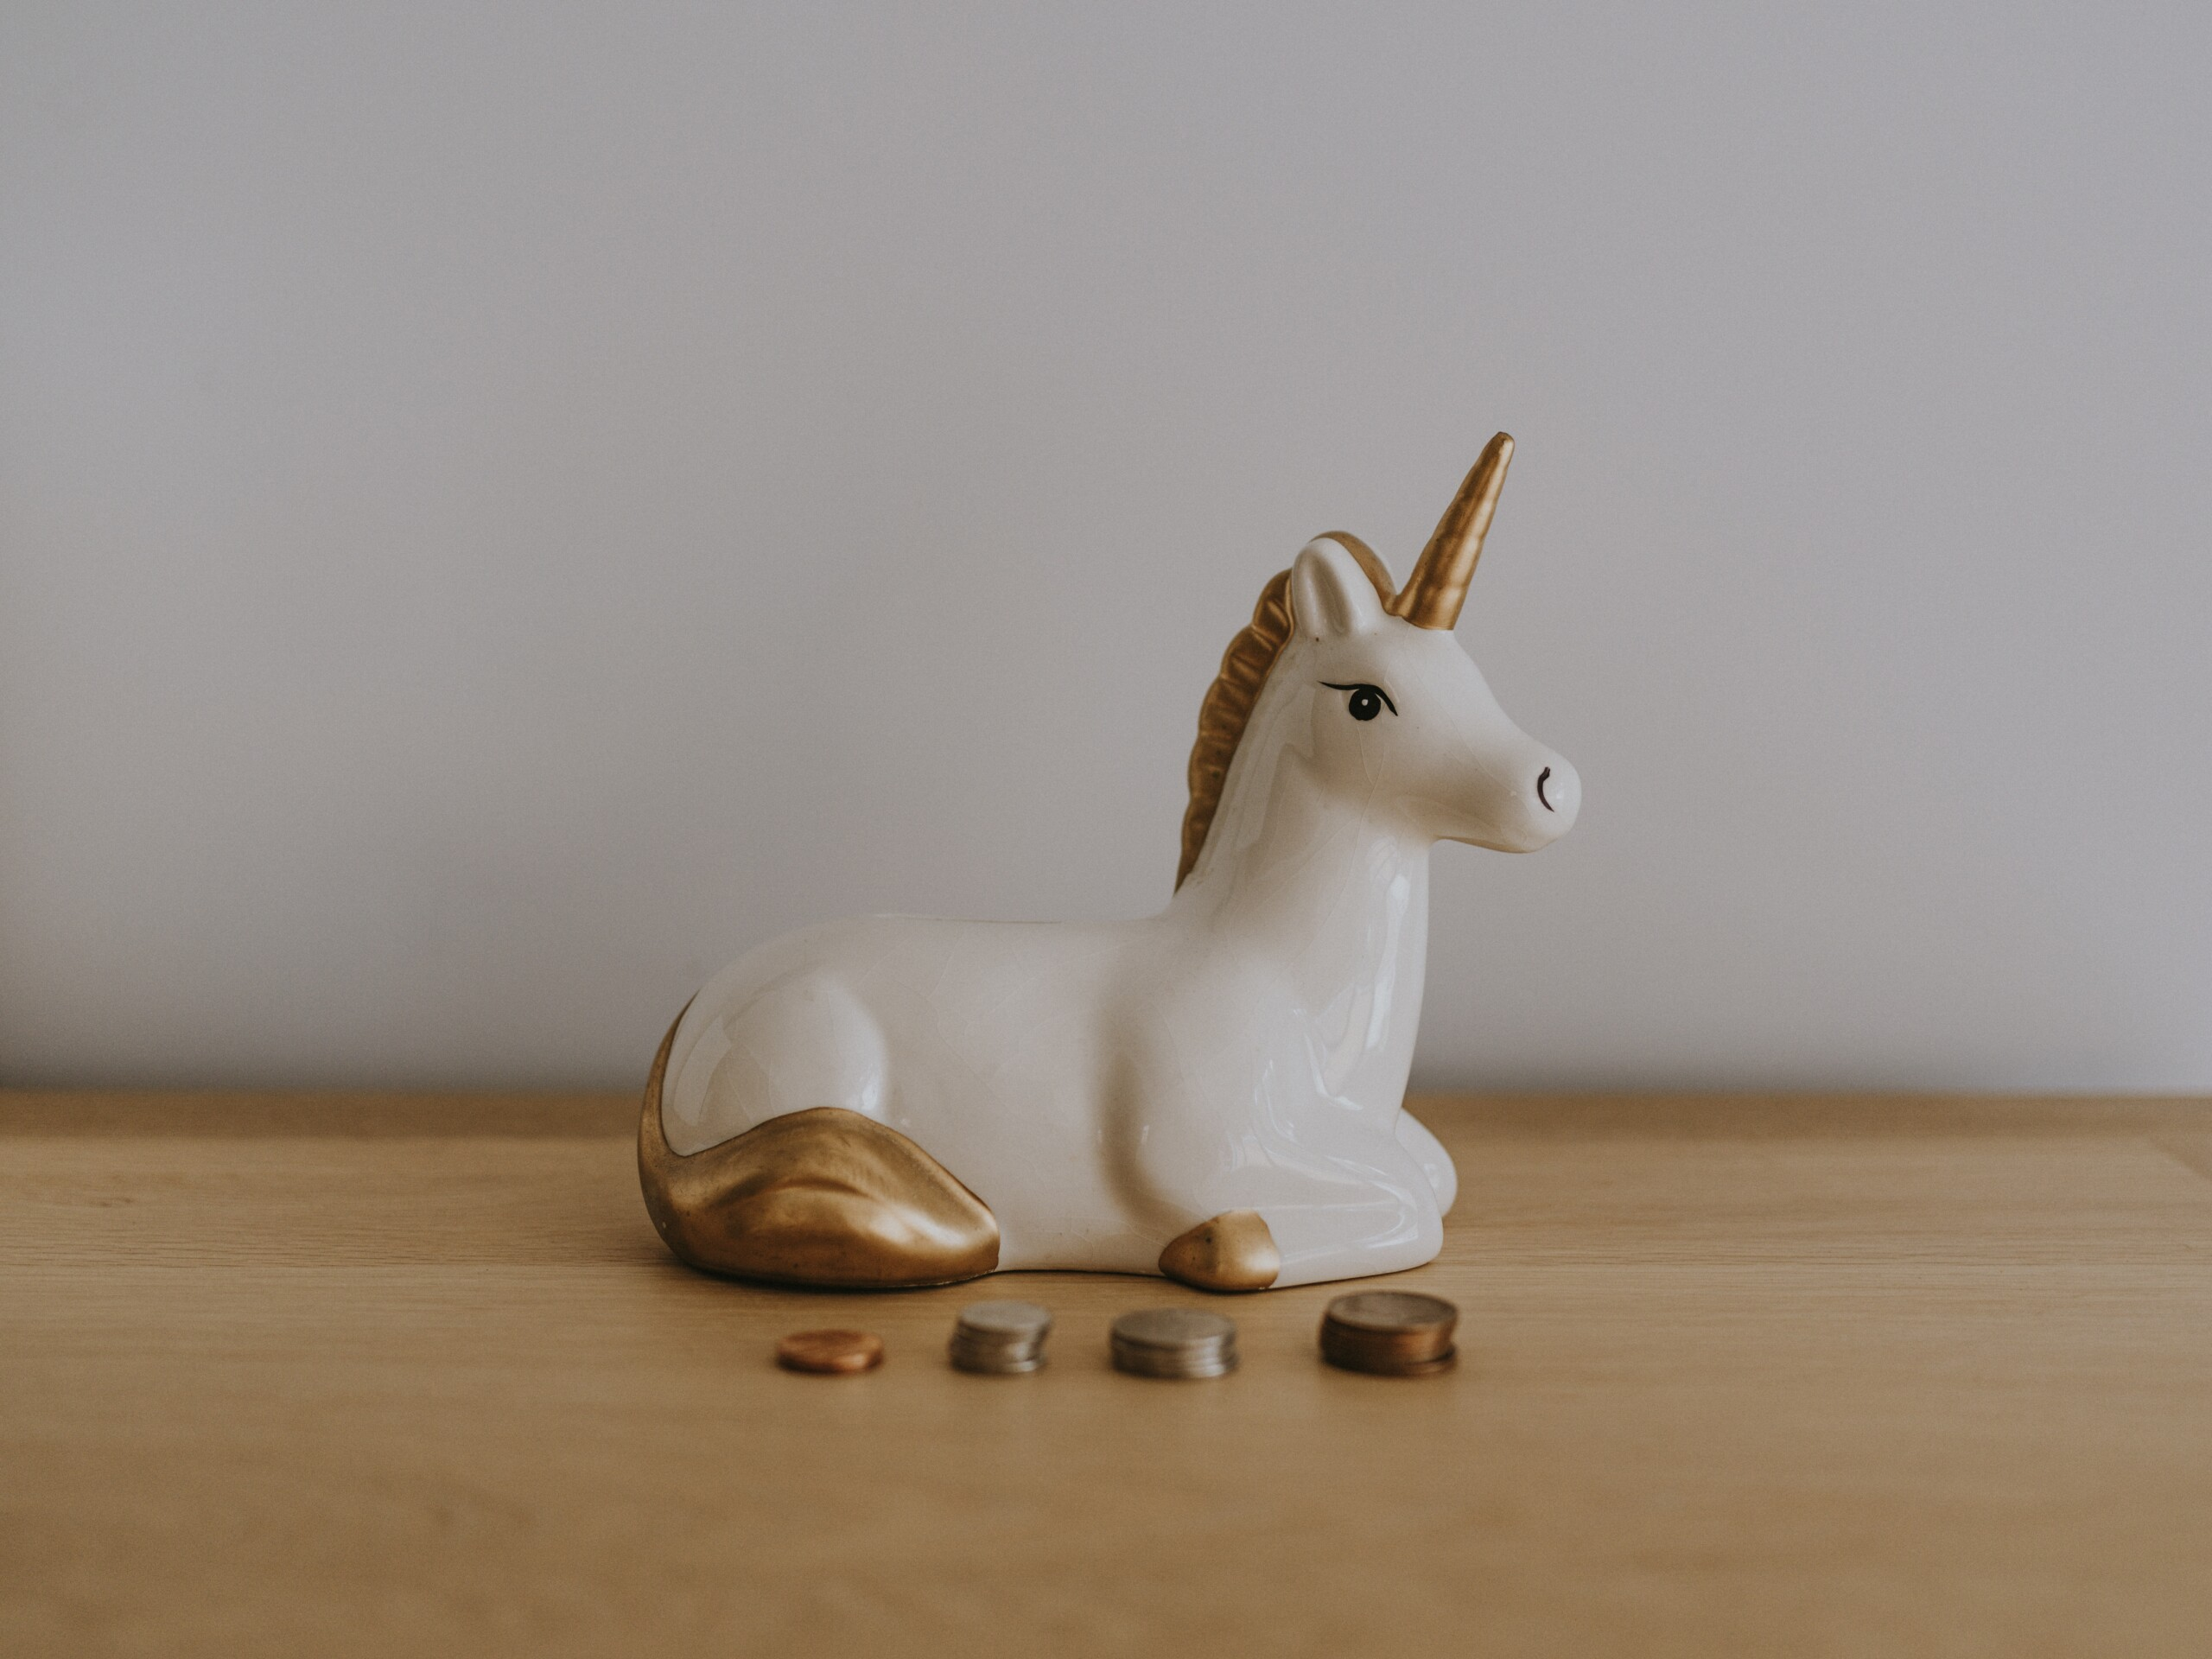 Research Paper: The Dangerous Myth of the Unicorn Leader